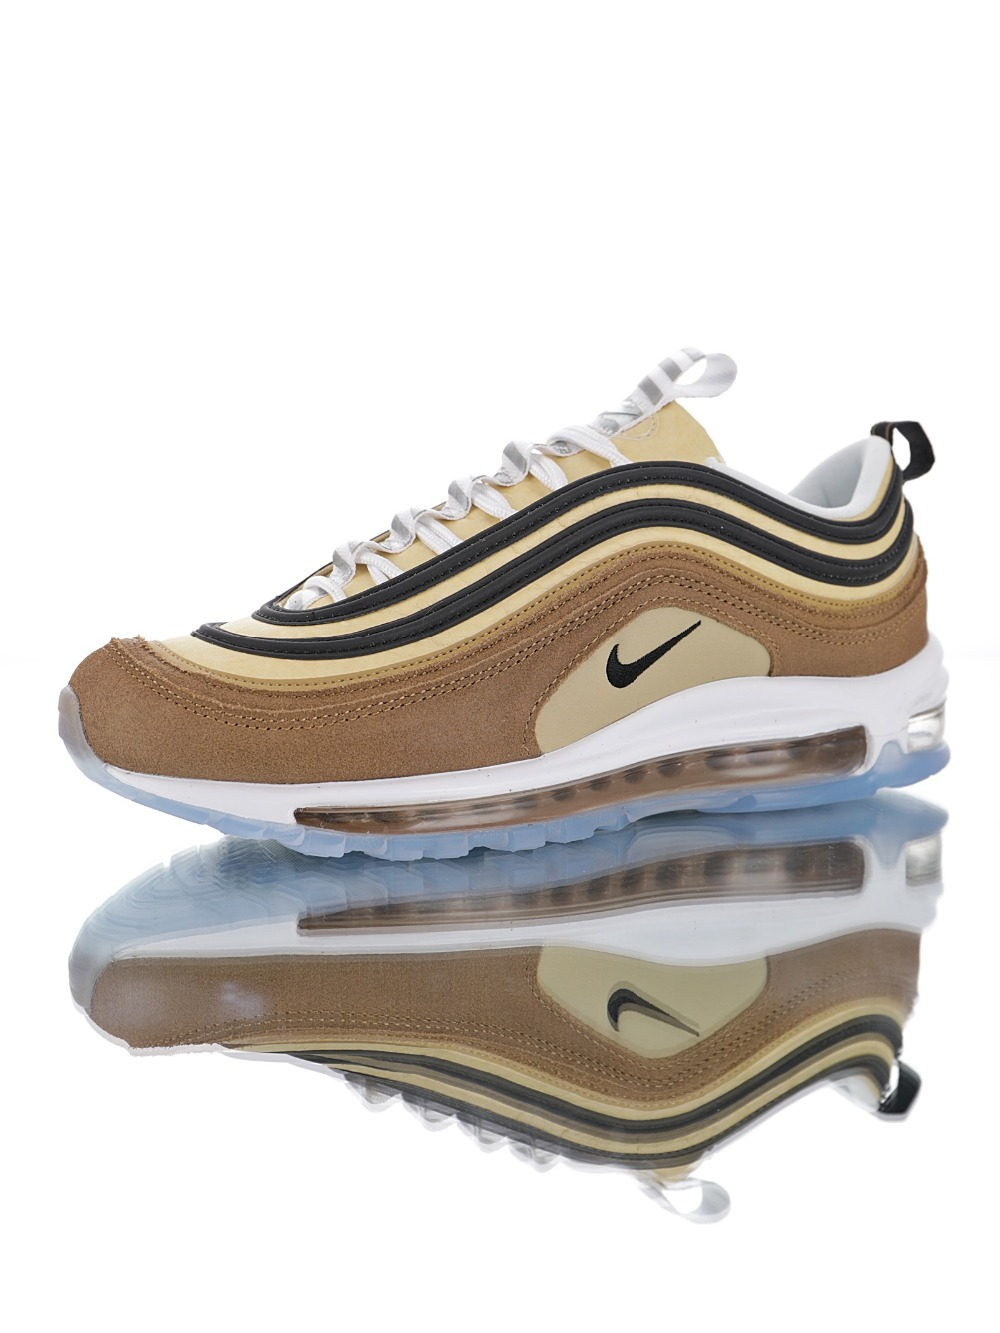 Q13 Nike Air Max 97 OG Wmns Yellow White Running Shoes 921826 201 921826 201